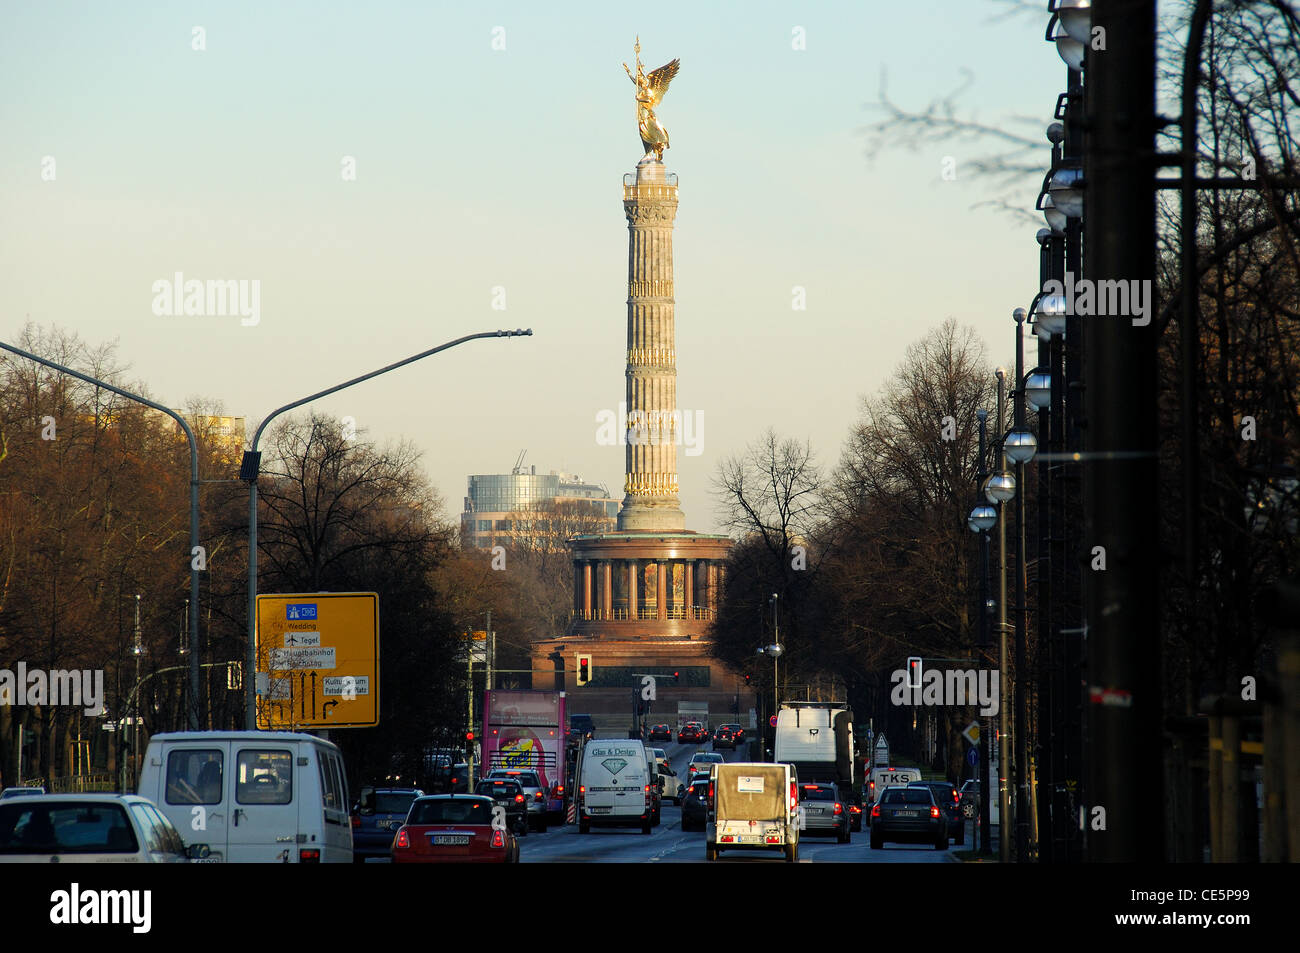 BERLIN, GERMANY. A dawn view of the recently restored Siegessaule (Victory Column) on Grosser Stern in the Tiergarten. - Stock Image